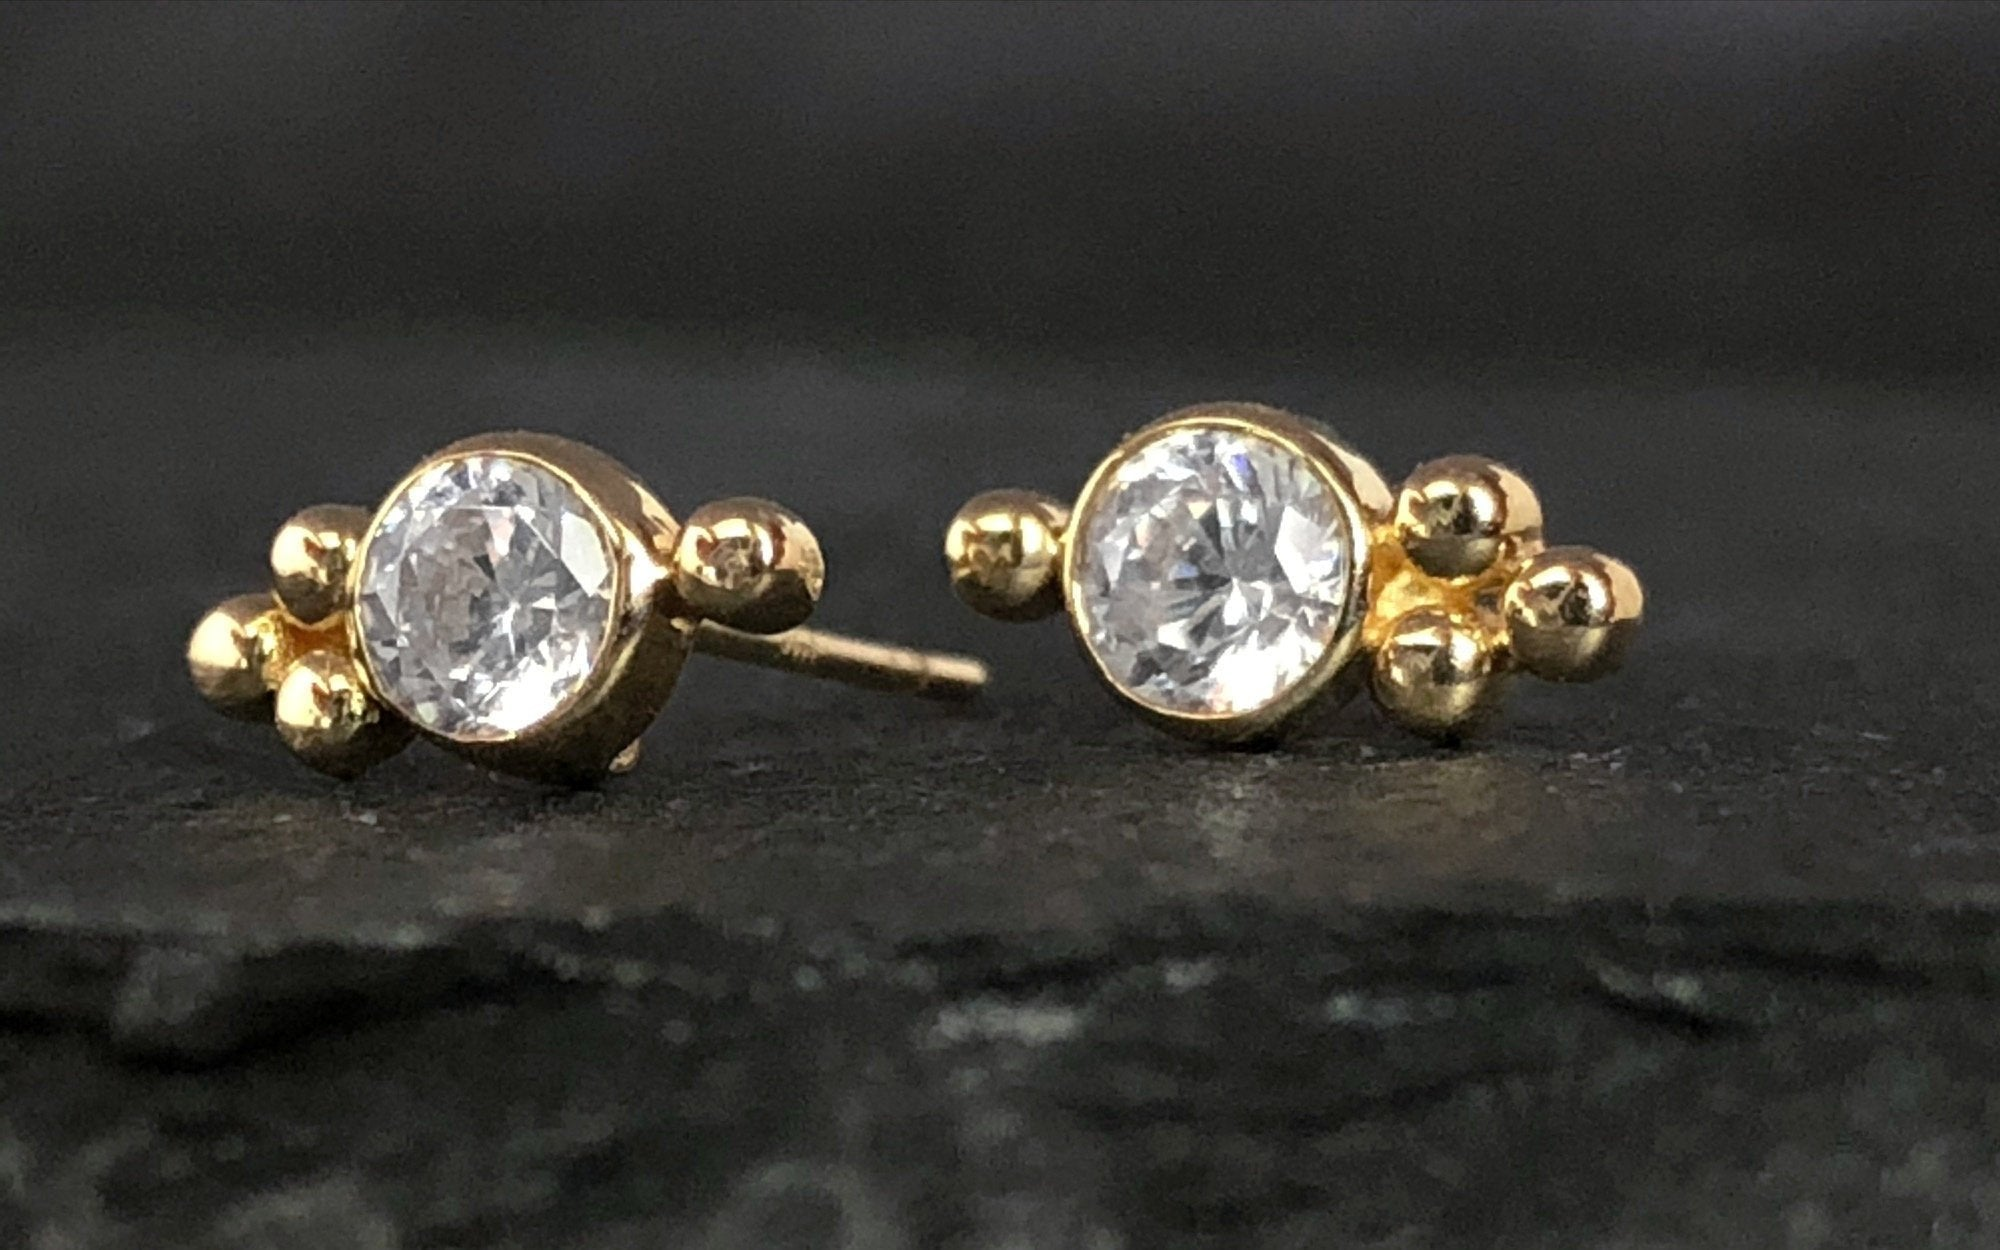 Trinity Stud Earrings | Push Back Earrings | Solid Gold Hypoallergenic Jewelry | Helix, Cartilage | Two of Most Fine Jewelry